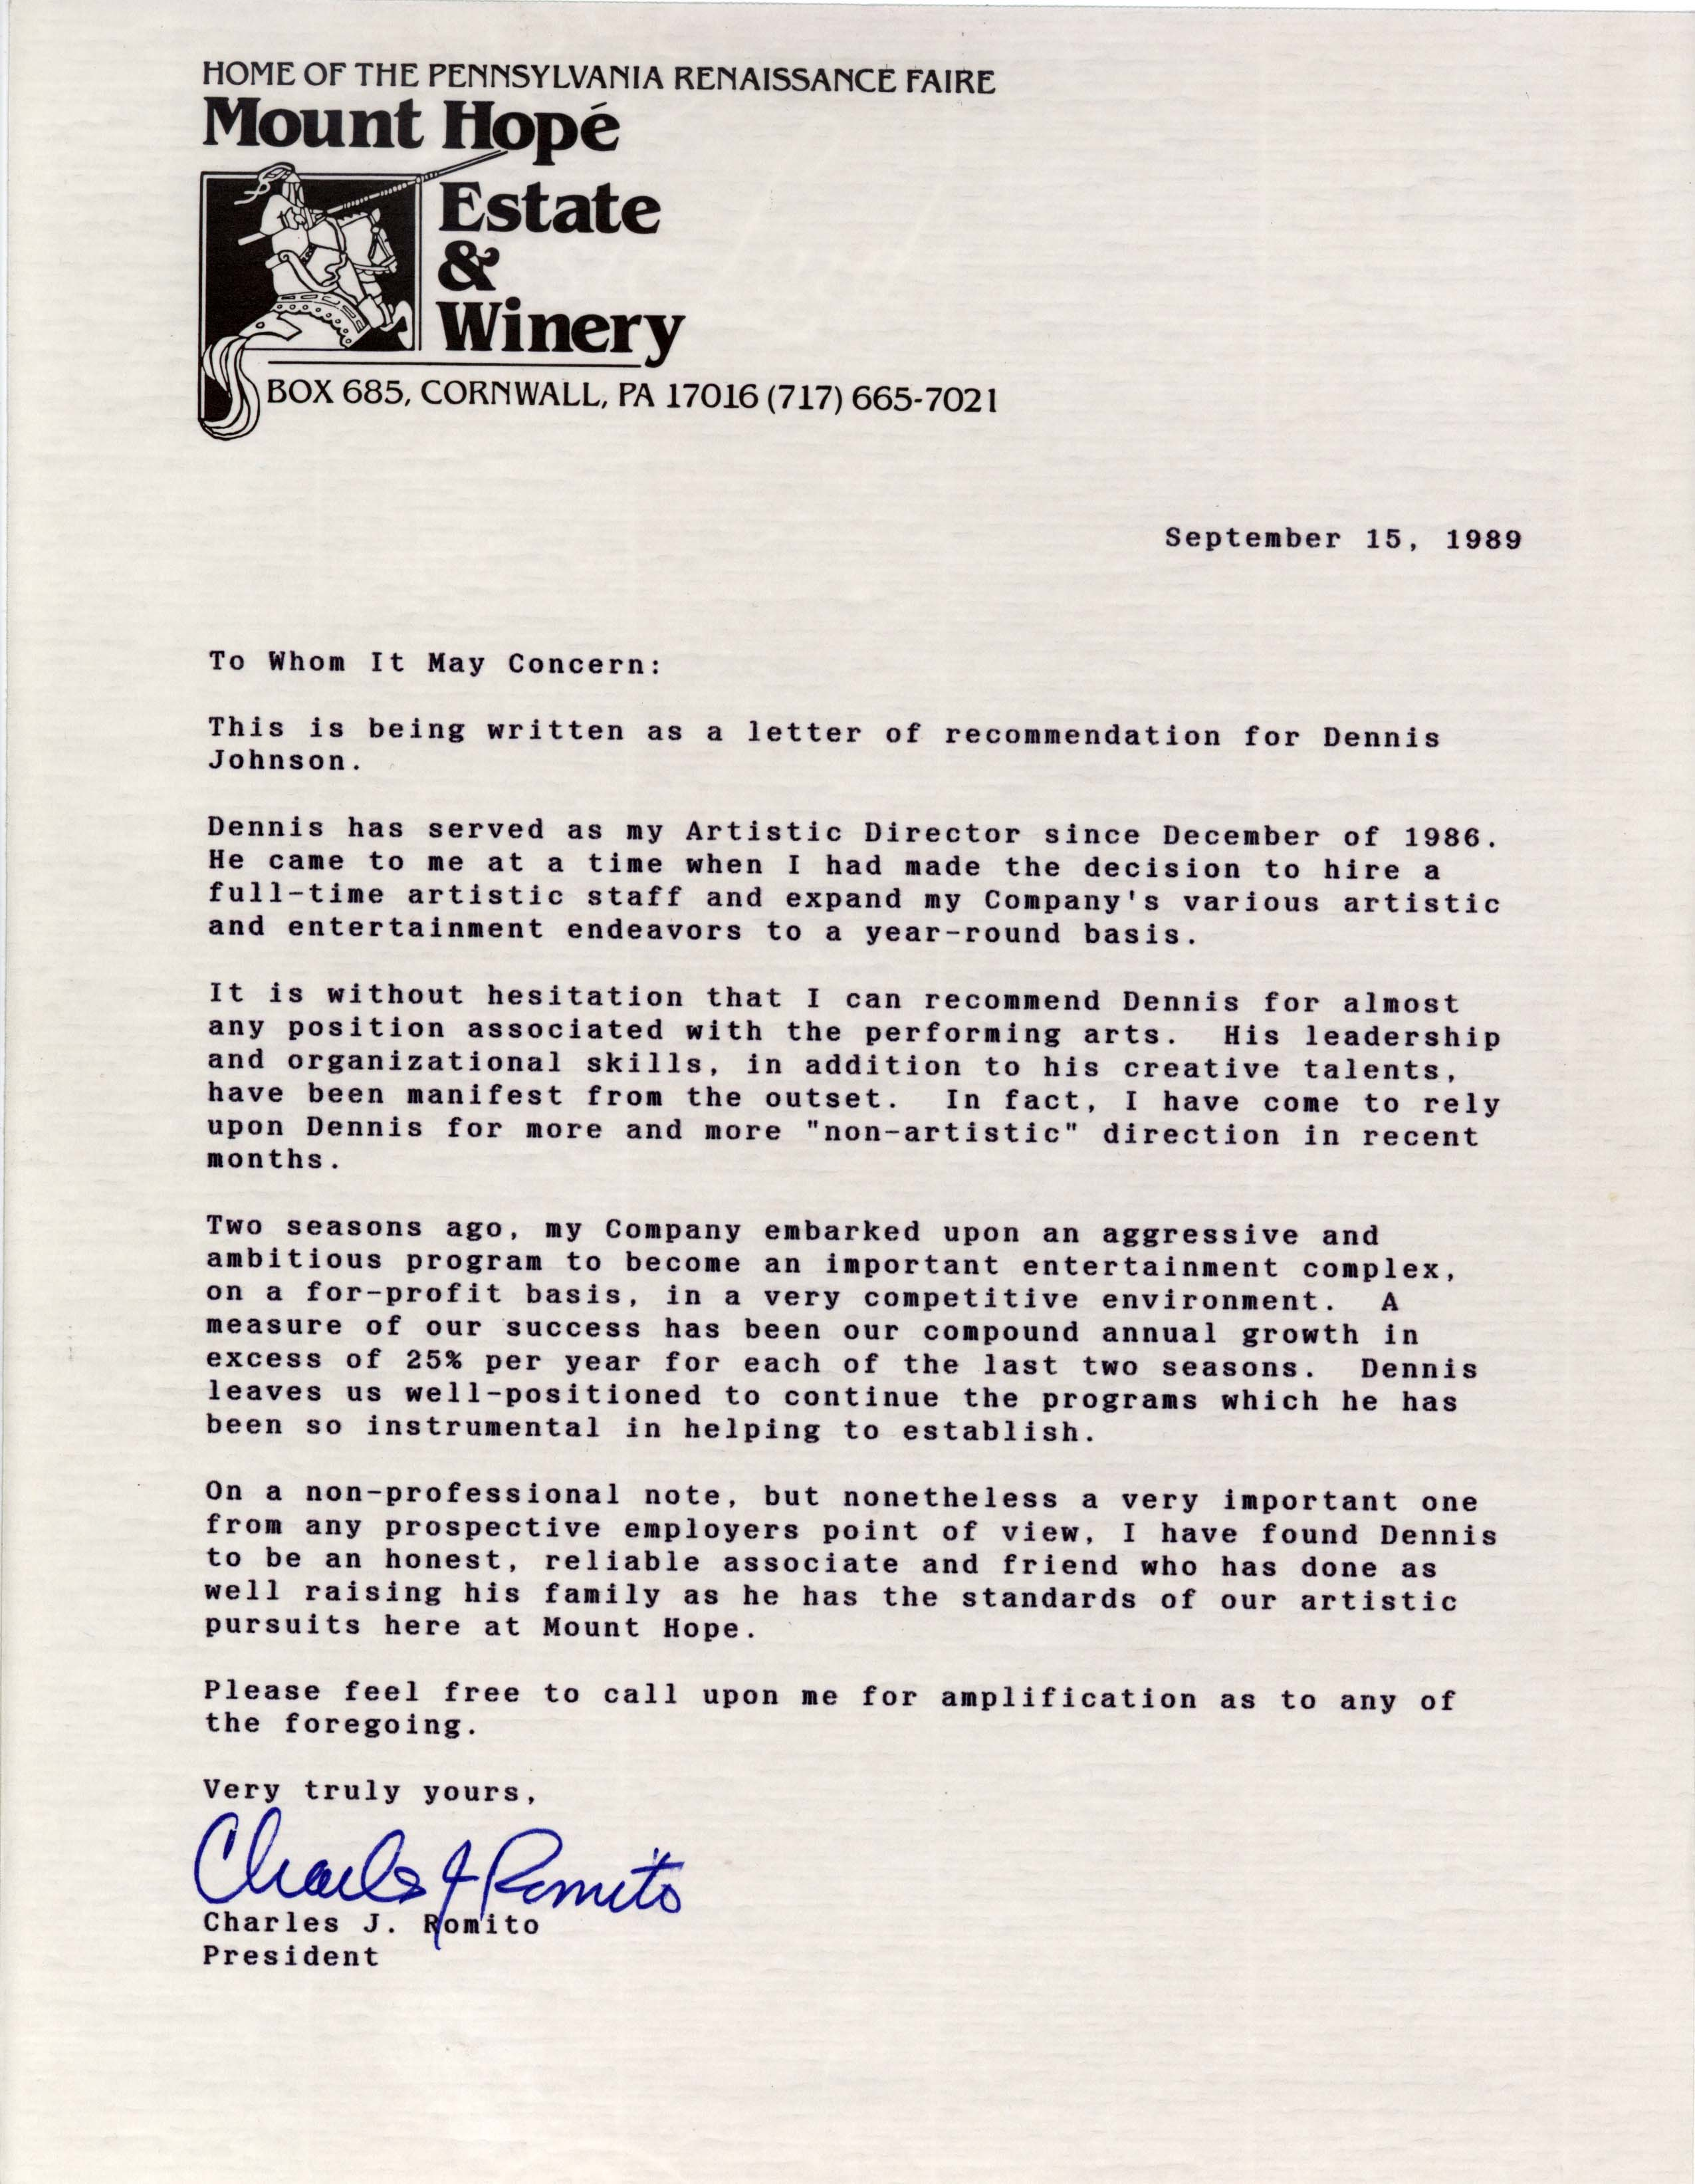 Romito-Recommendation-Letter